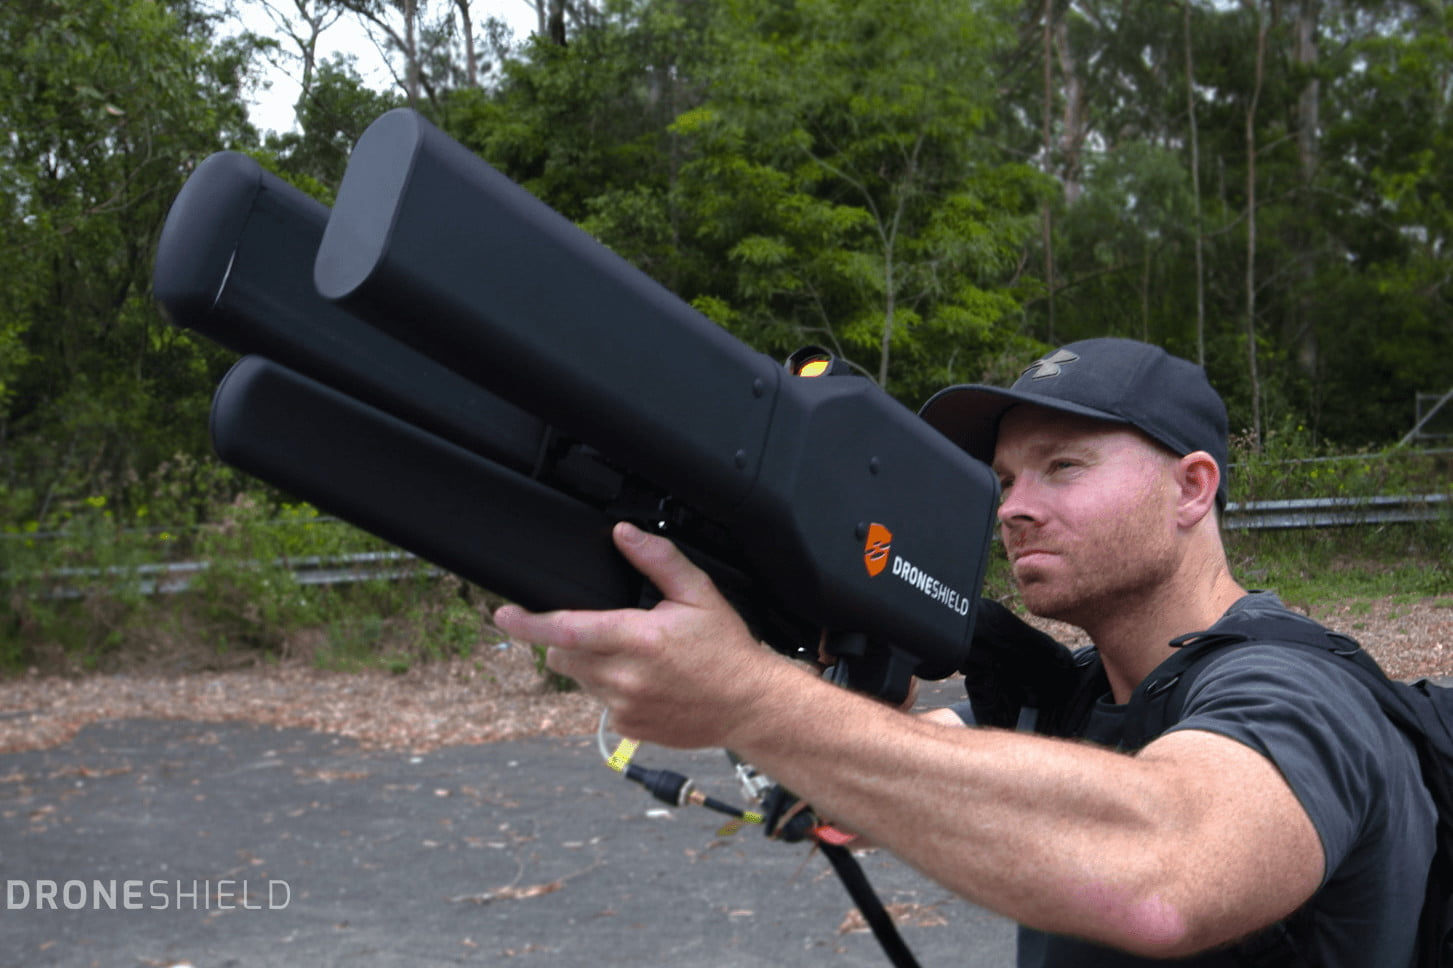 Droneshield's Dronegun Is Designed To Stop Drones